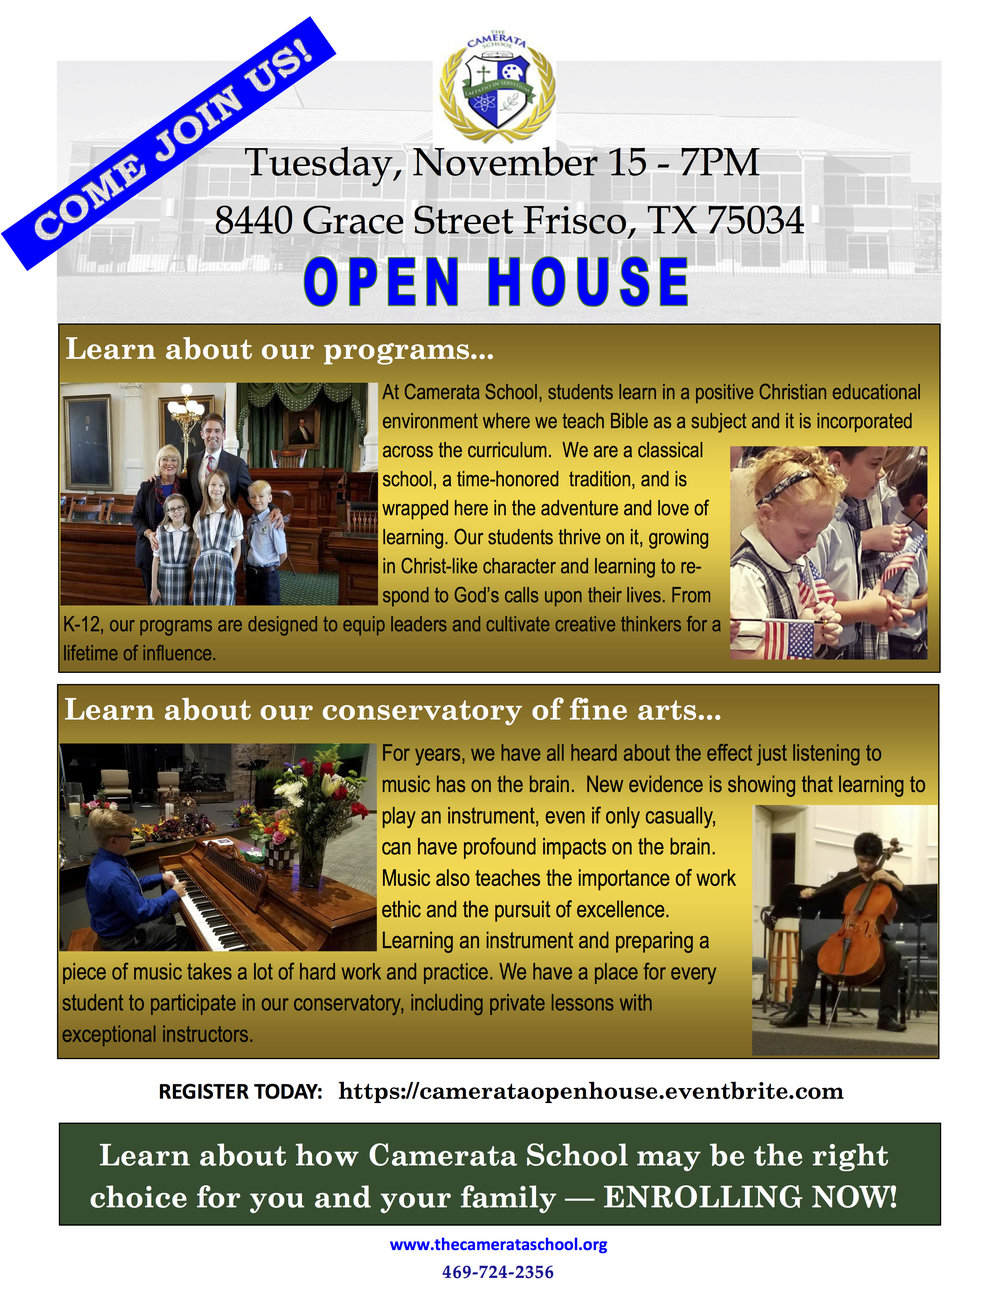 Open House Flyer.jpg